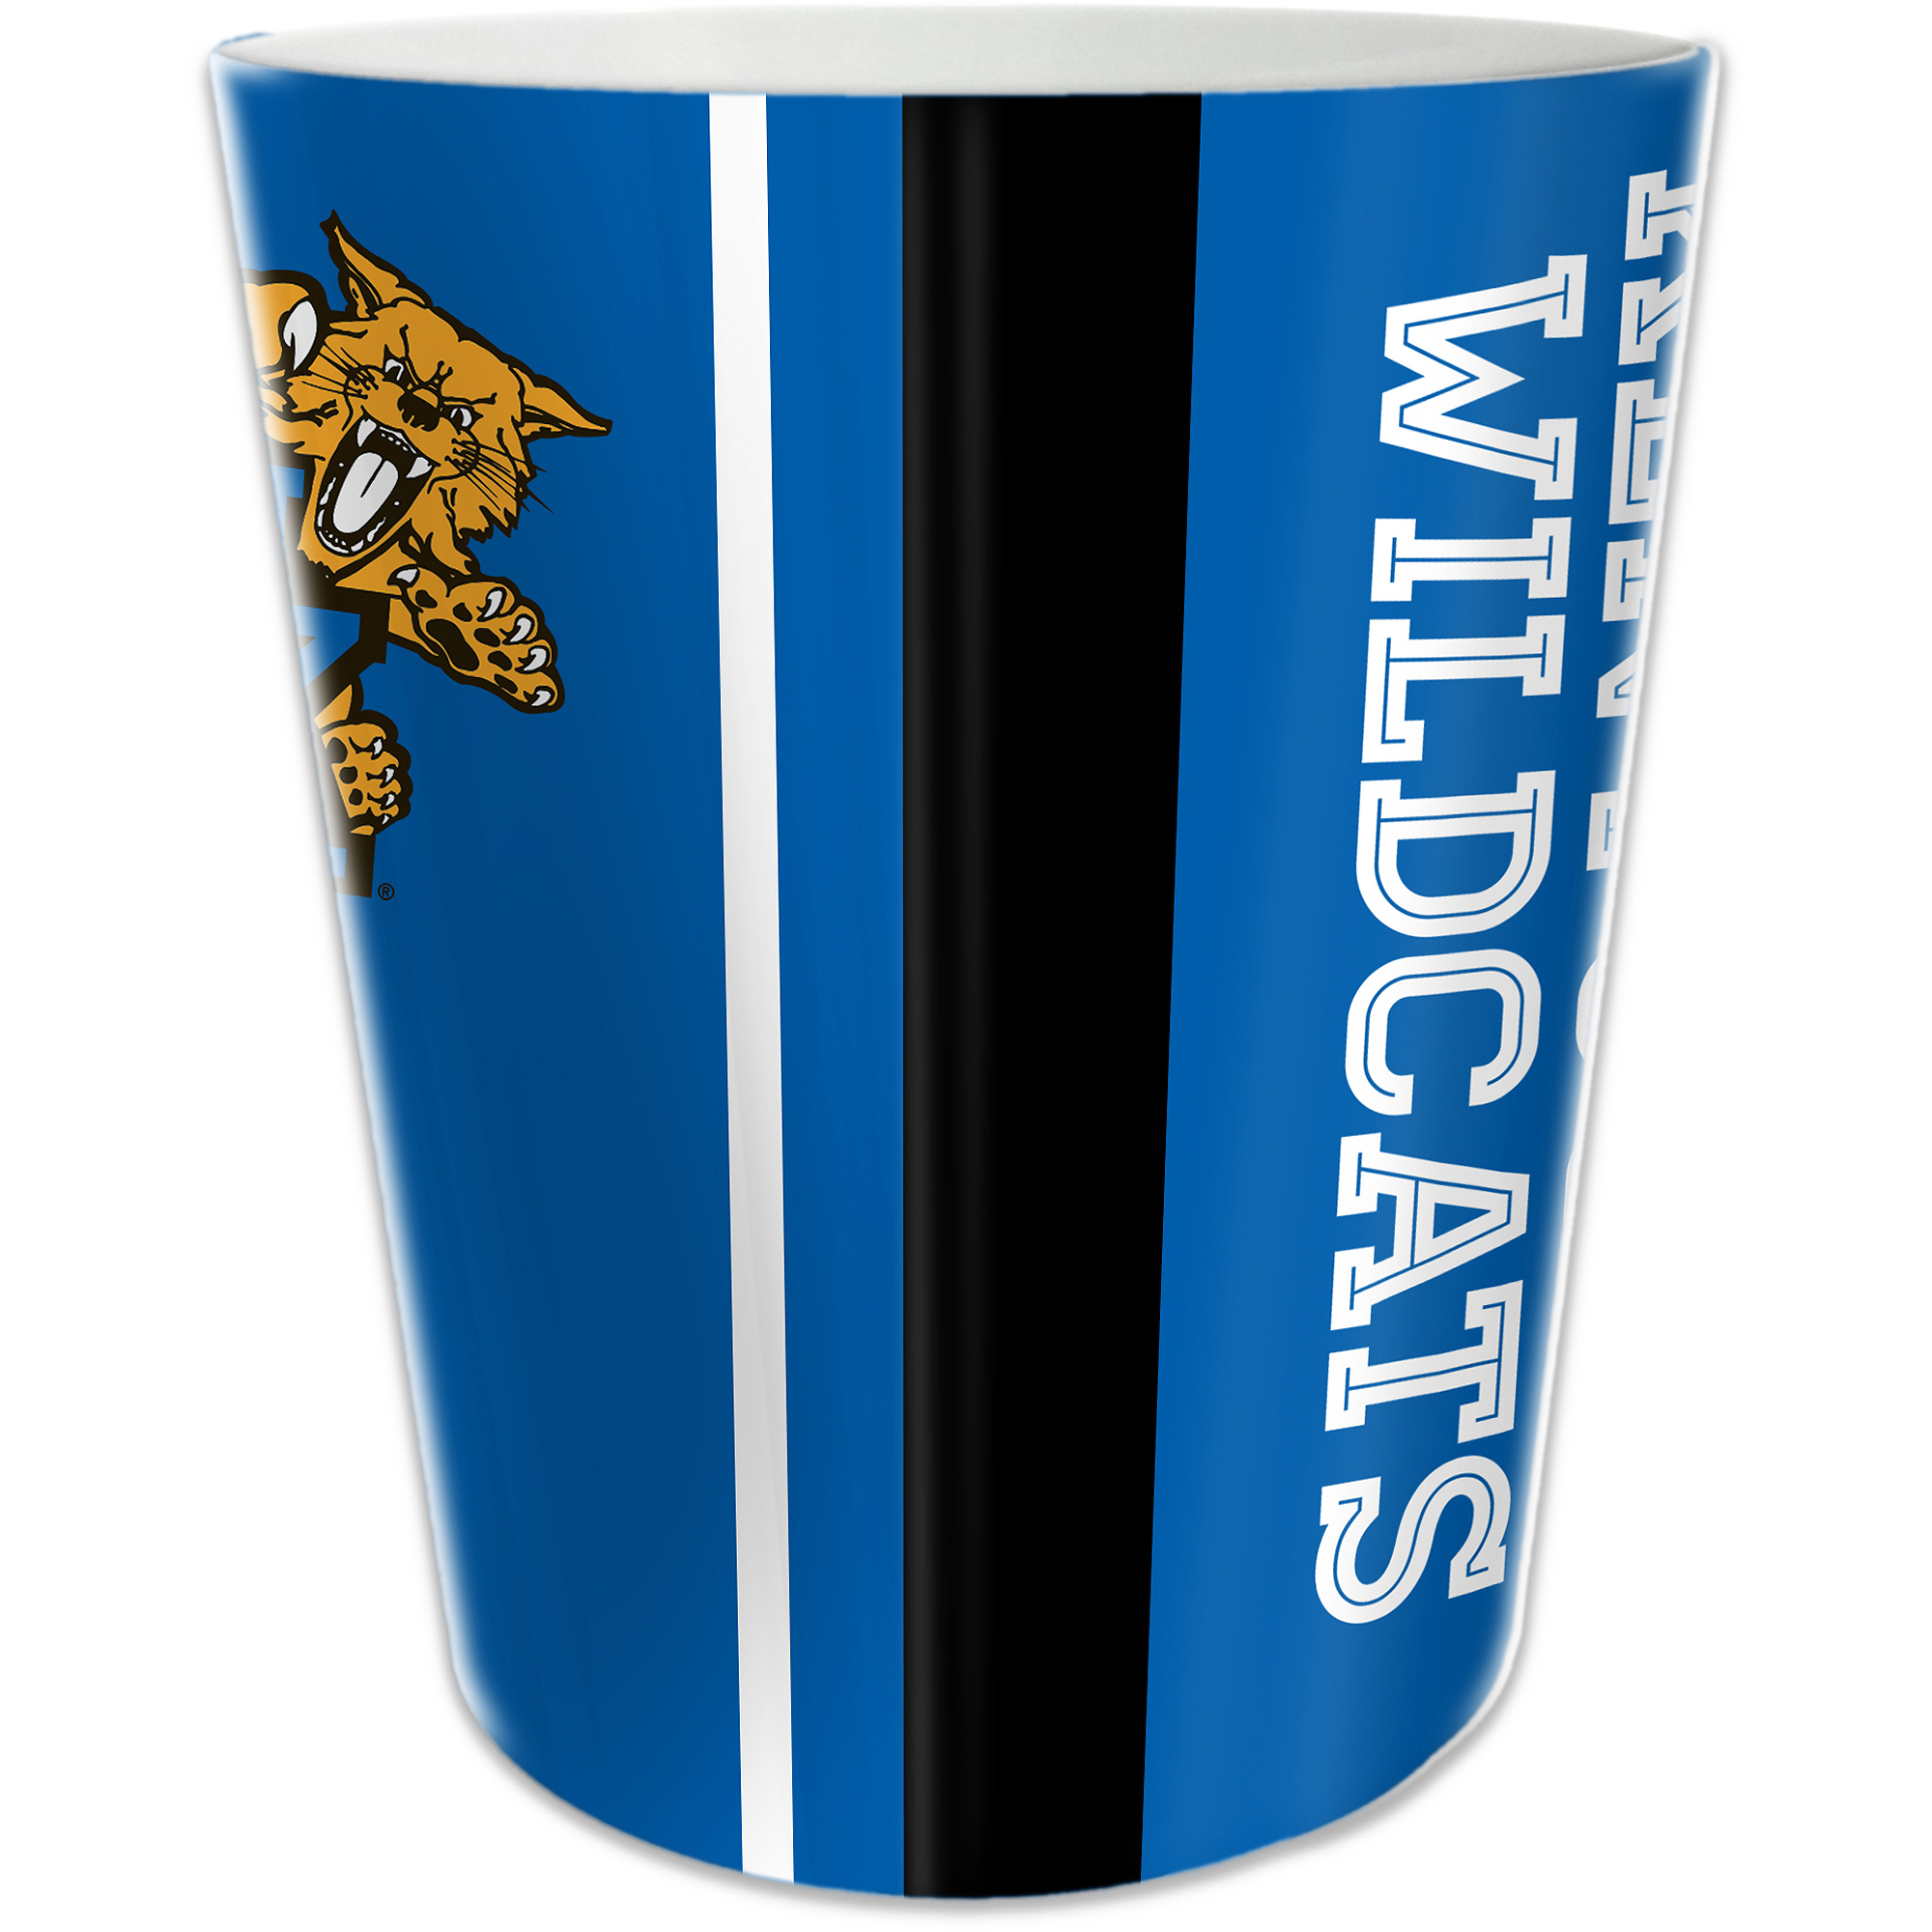 NCAA University of Kentucky Decorative Bath Collection - Wastecan